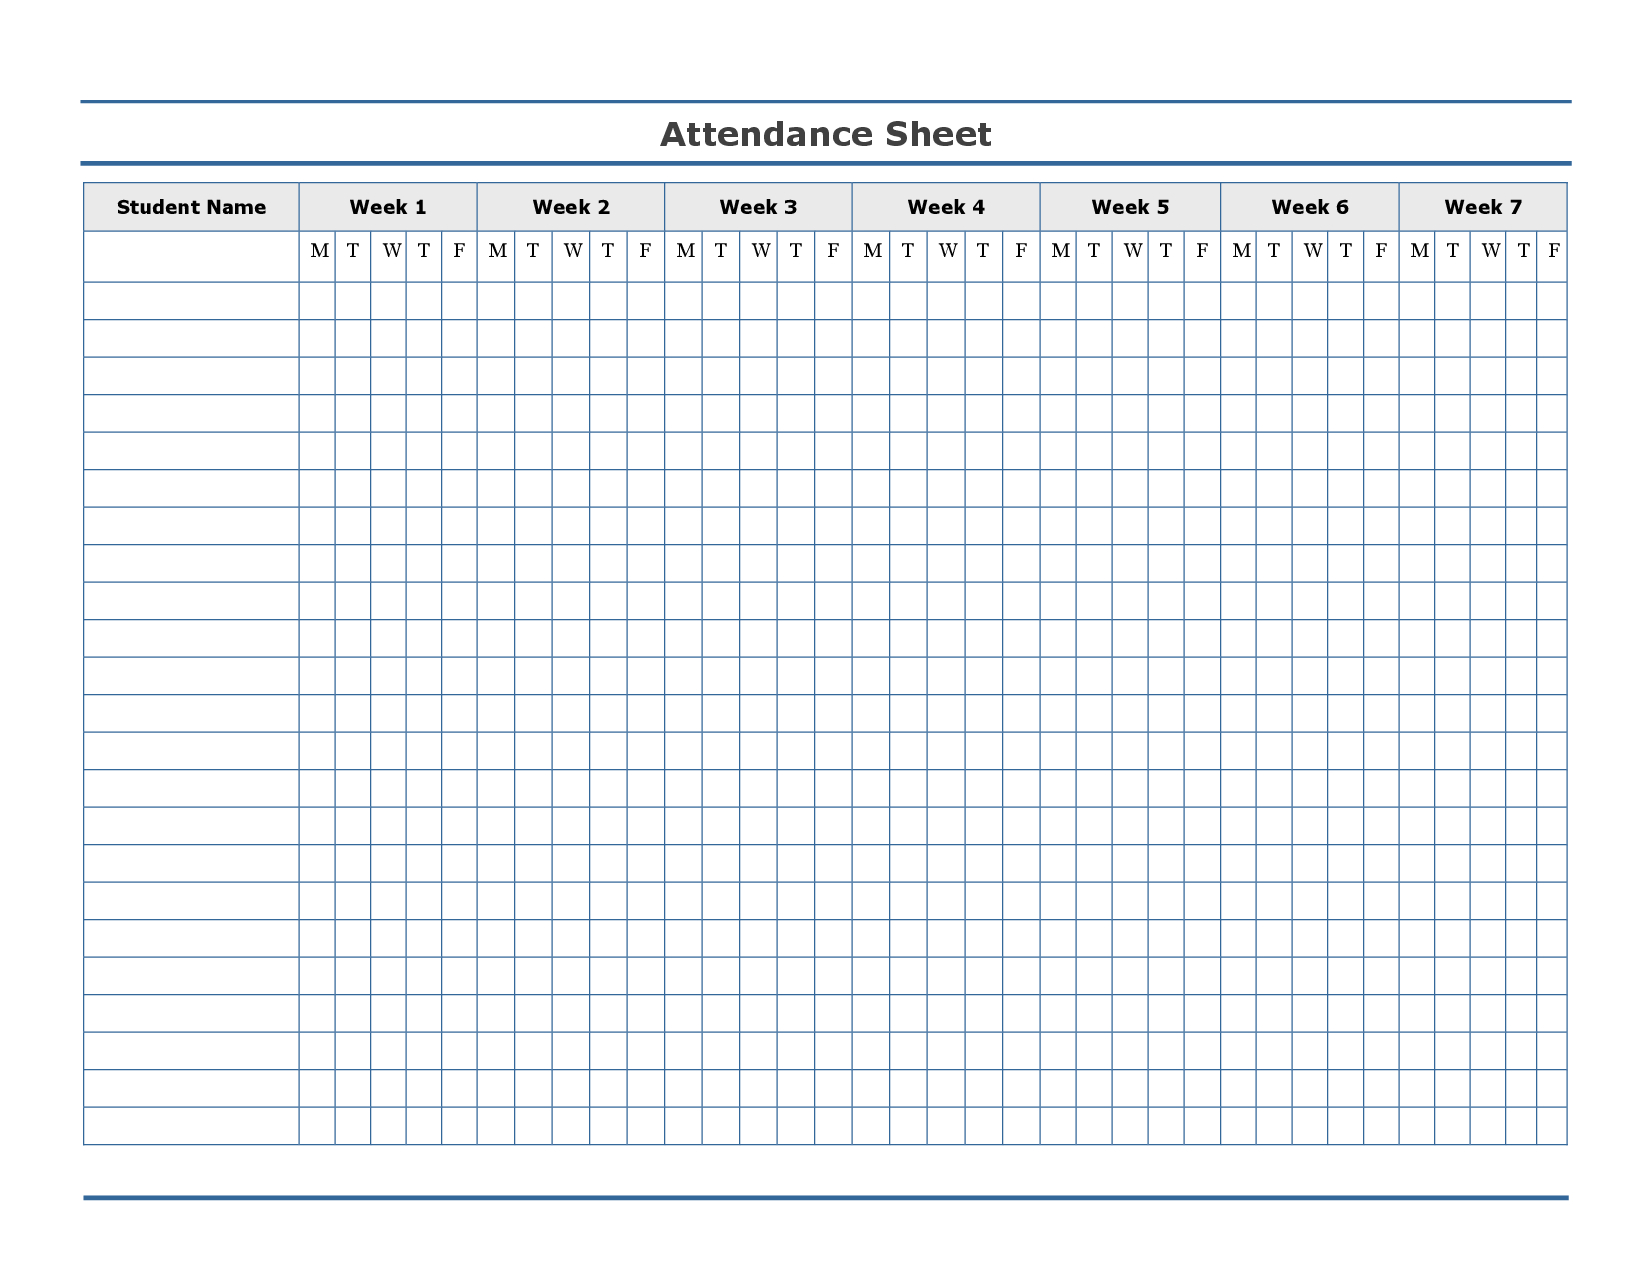 Free Printable Attendance Sheet Template … | Education | Attendance - Free Printable Attendance Sheets For Homeschool